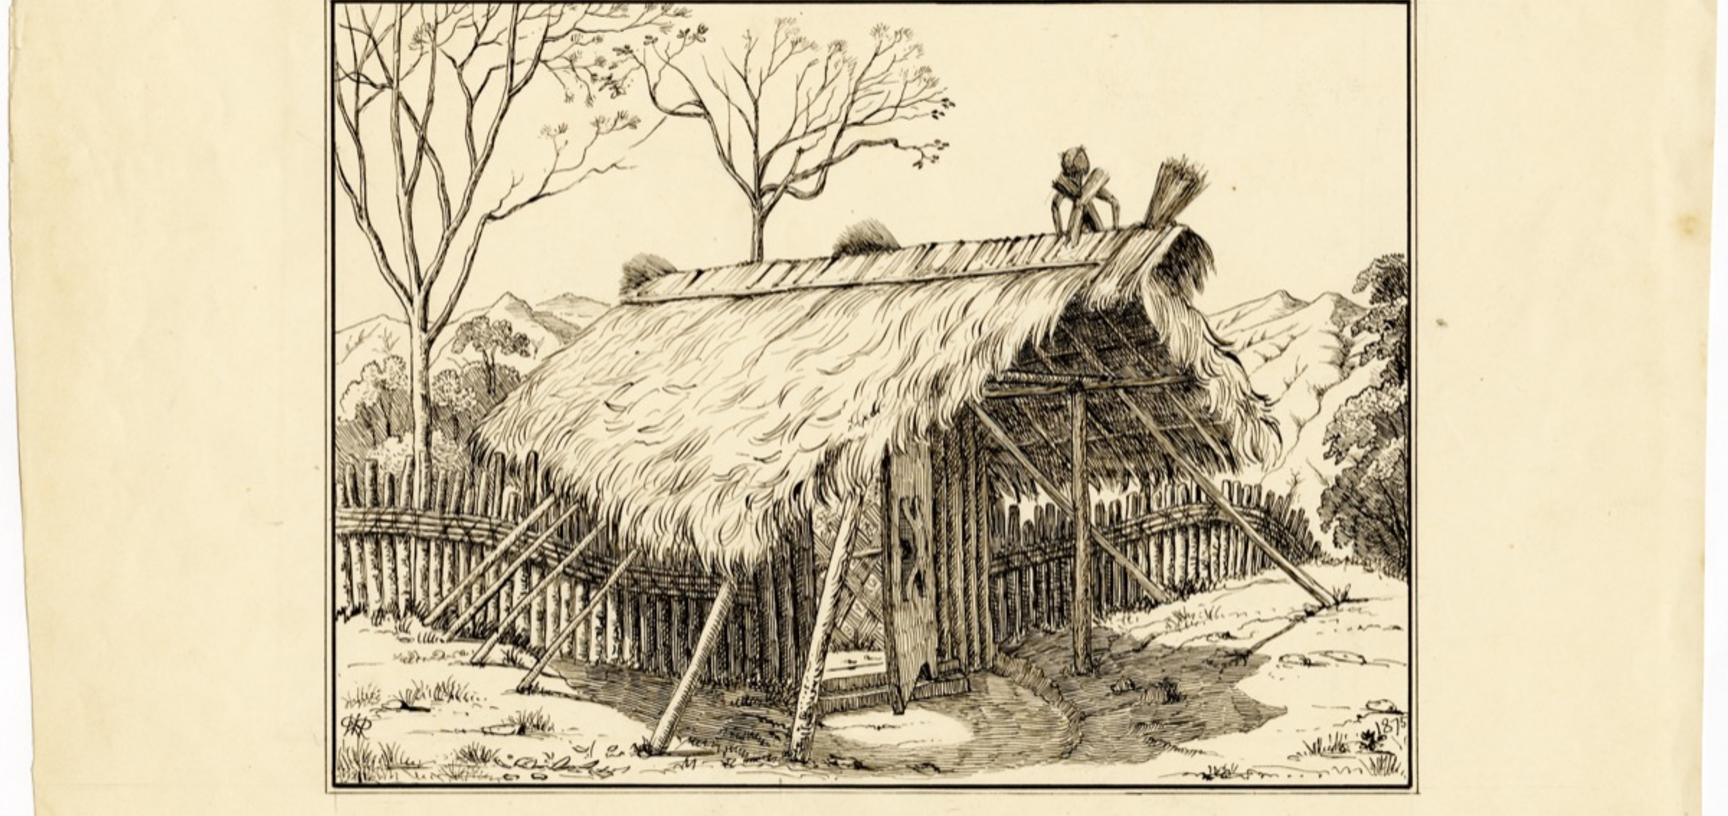 'Gateway. Dekha Haimung' (handwritten caption). Entrance gate to the Ao Naga village of Dekha Haimong, in the Naga Hills District of Assam (now in Nagaland), India. Ink drawing by Robert Gosset Woodthorpe. Dated 1875.